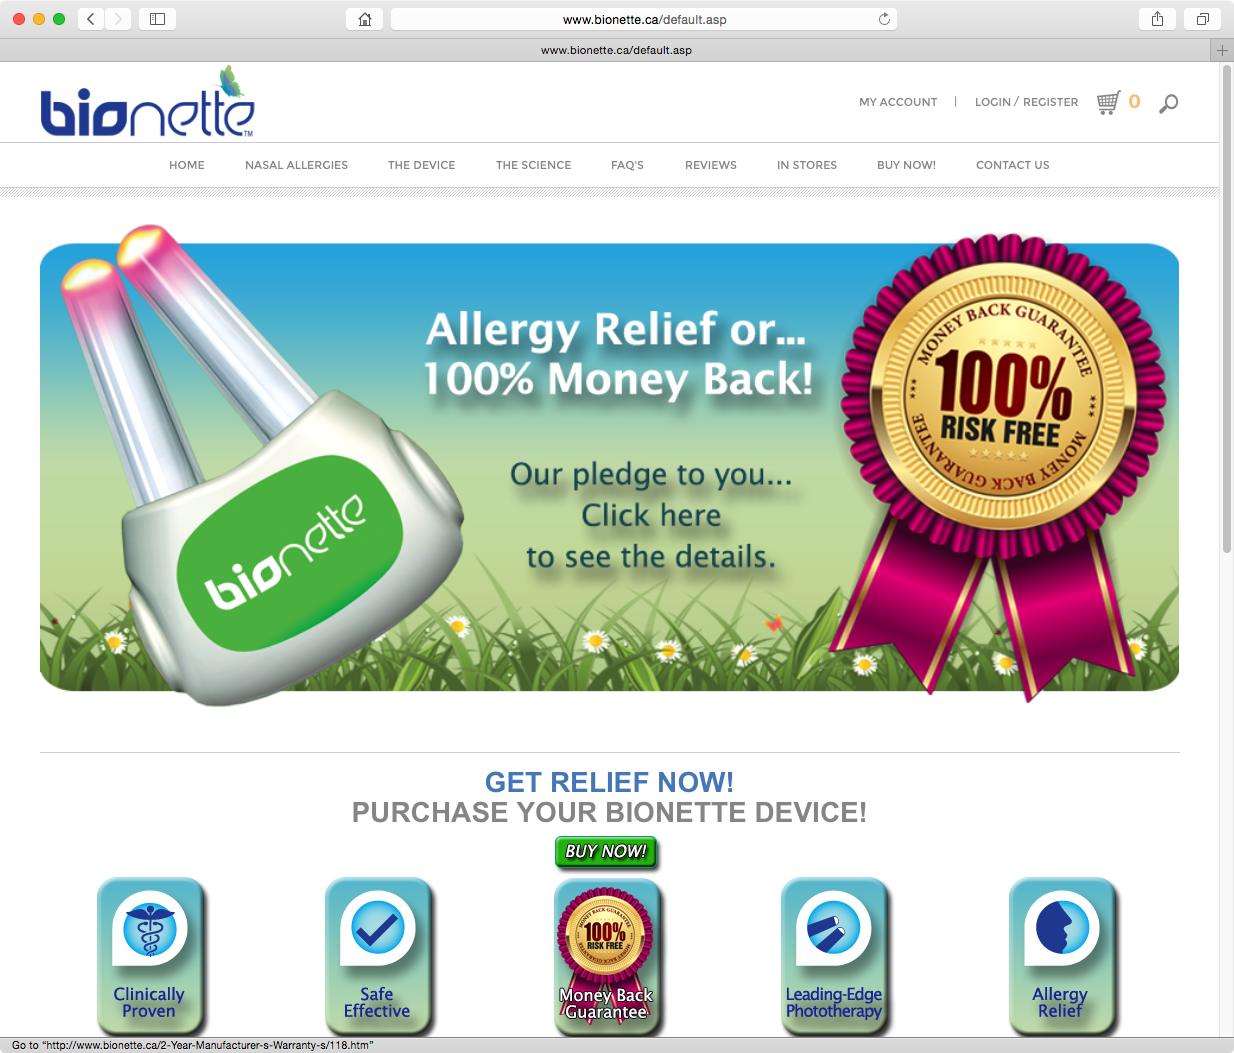 Bionette website